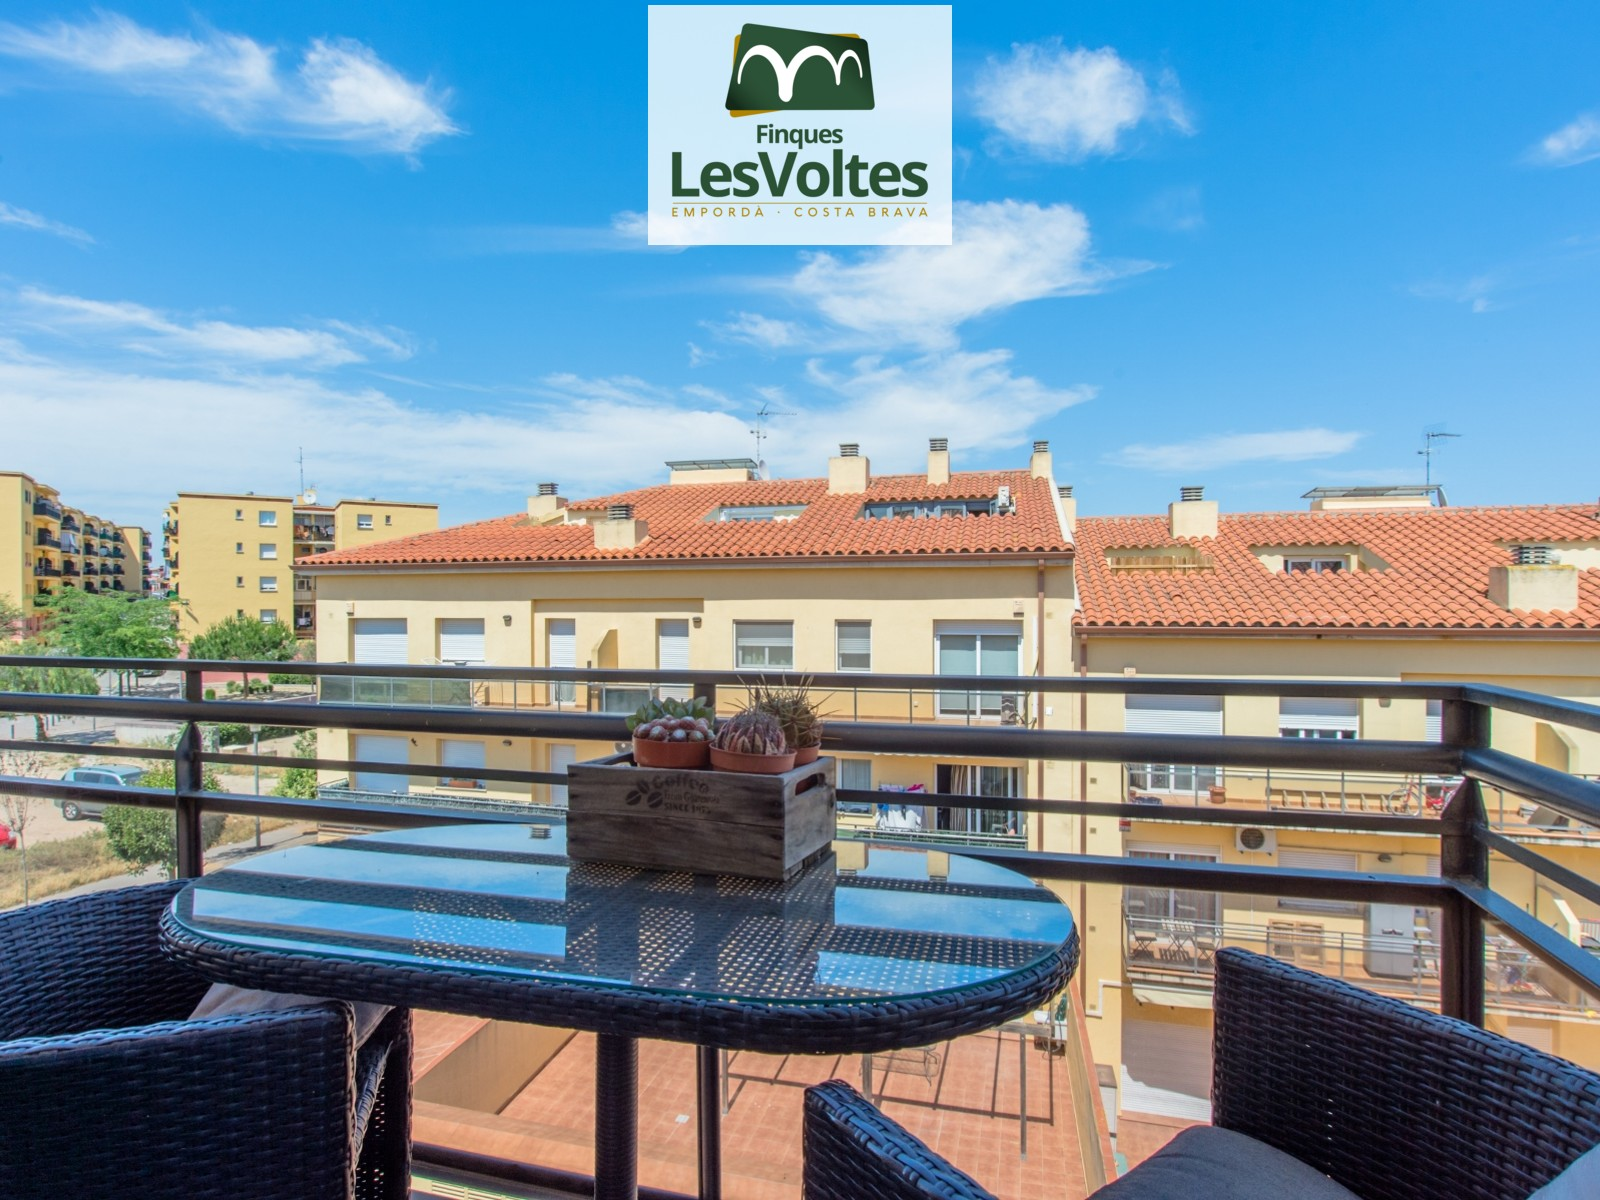 MAGNIFICENT 4 BEDROOM DUPLEX PENTHOUSE WITH TERRACE AND DOUBLE PARKING SPACE FOR SALE IN PALAFRUGELL.